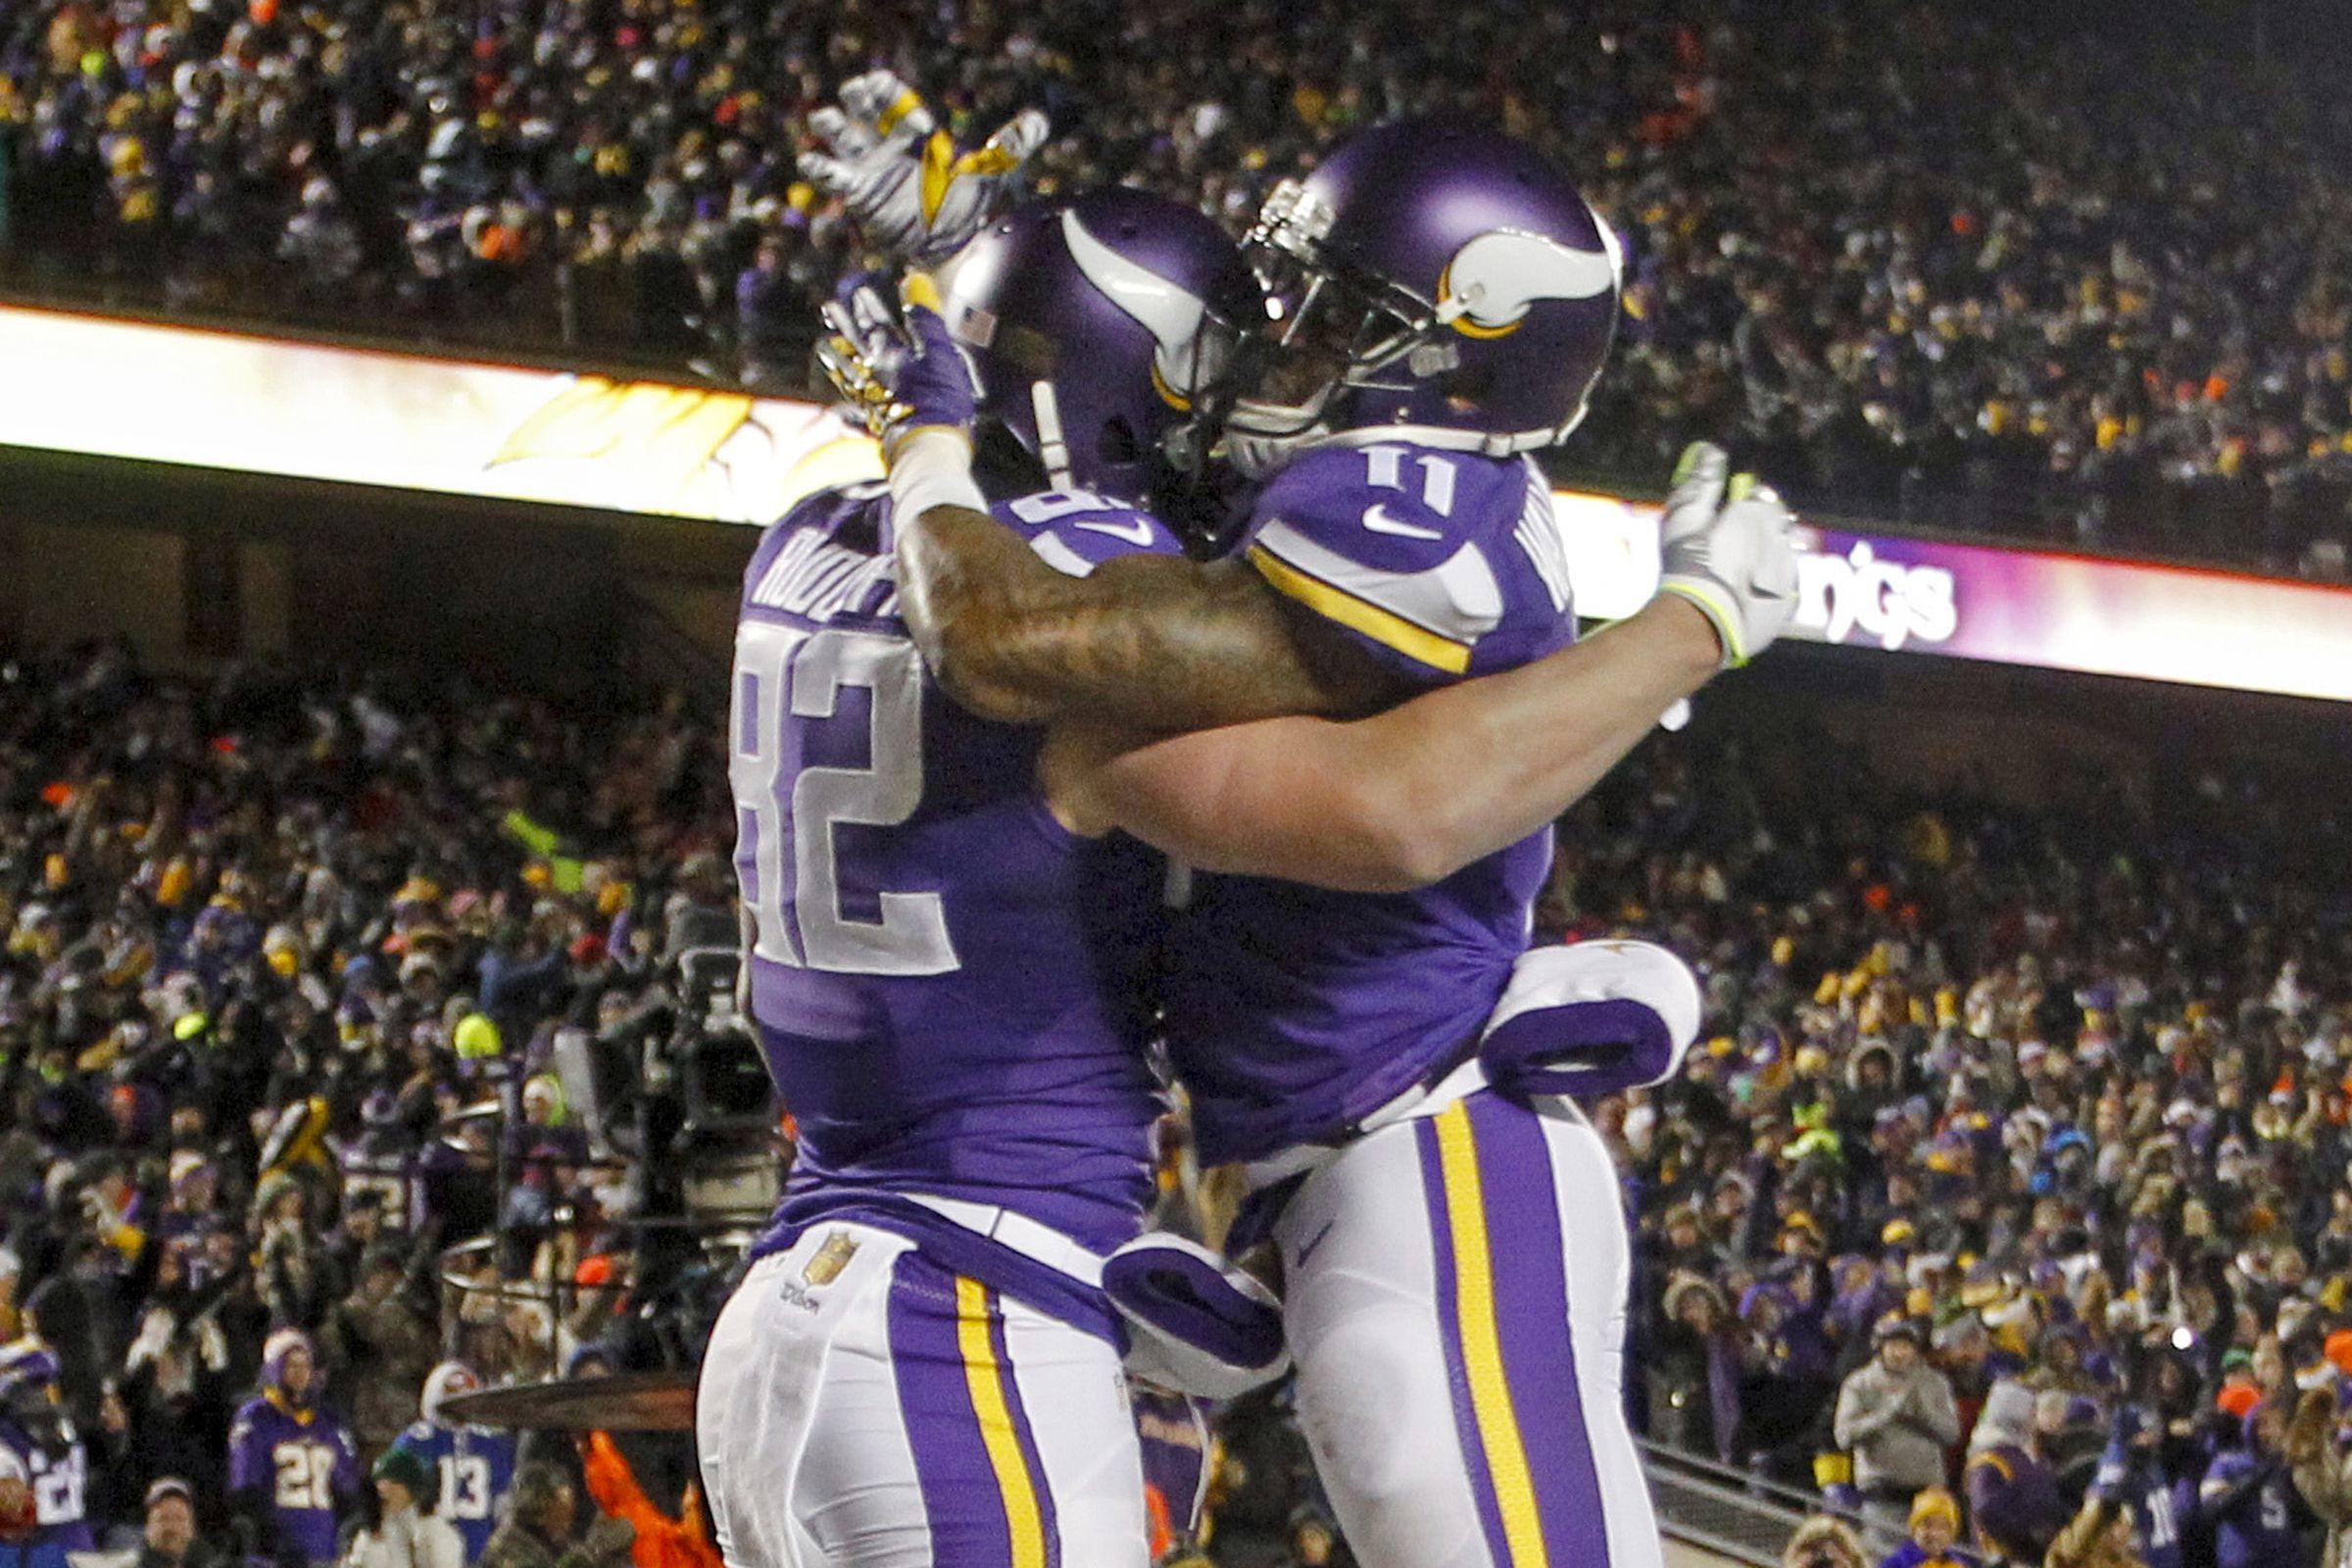 Temperatures near zero expected for Seahawks-Vikings playoff game